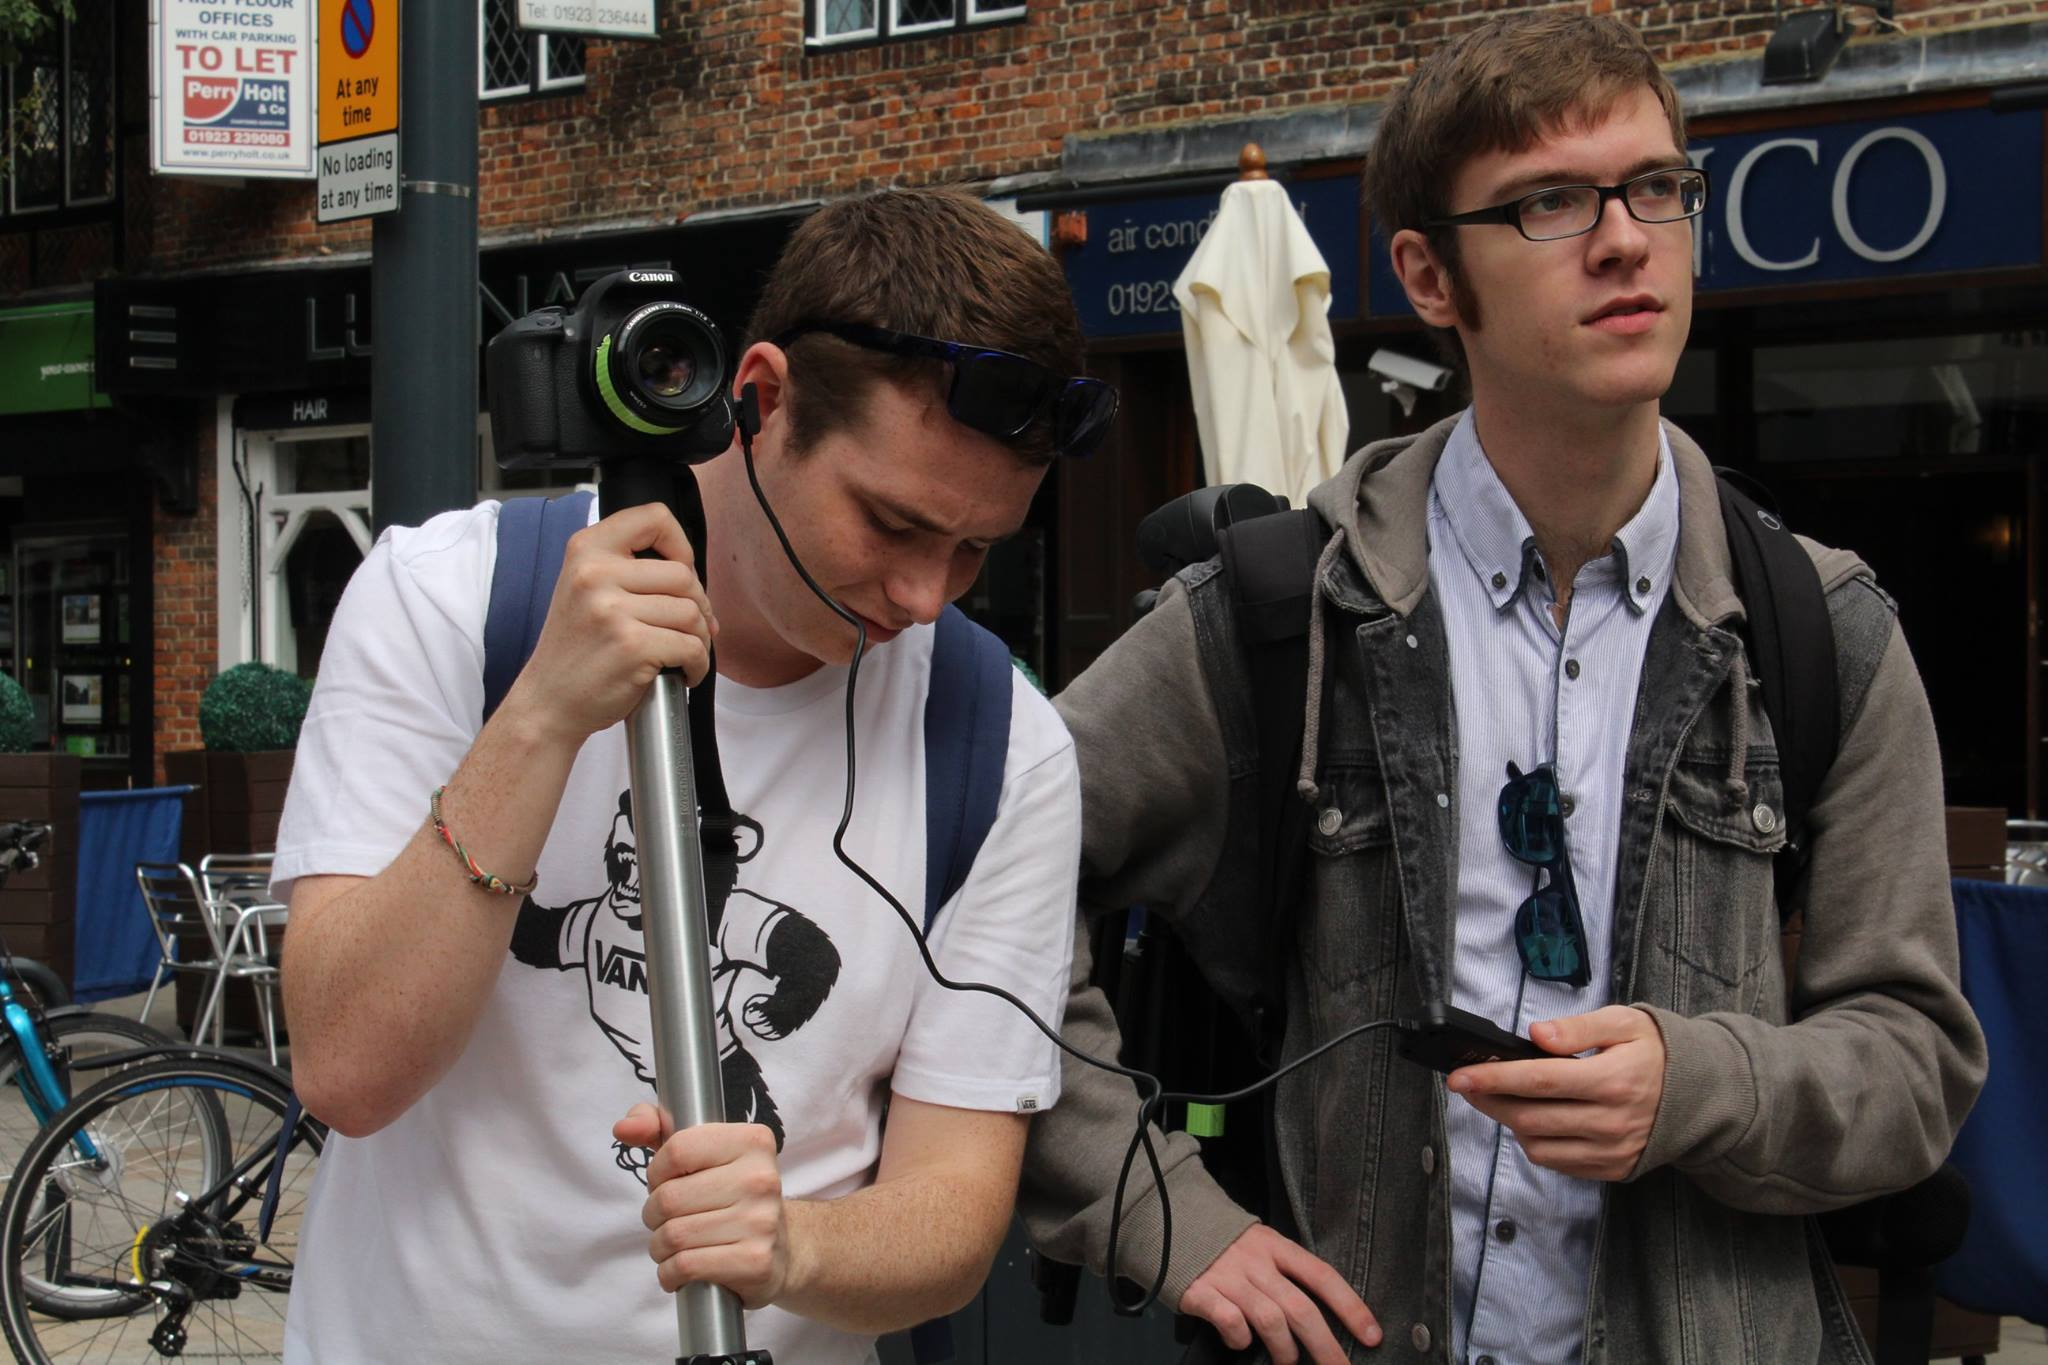 James Dyer (right) working on his own short film, Home Town, with Director of Photography Will Benson. The photo by Antonietta Reda